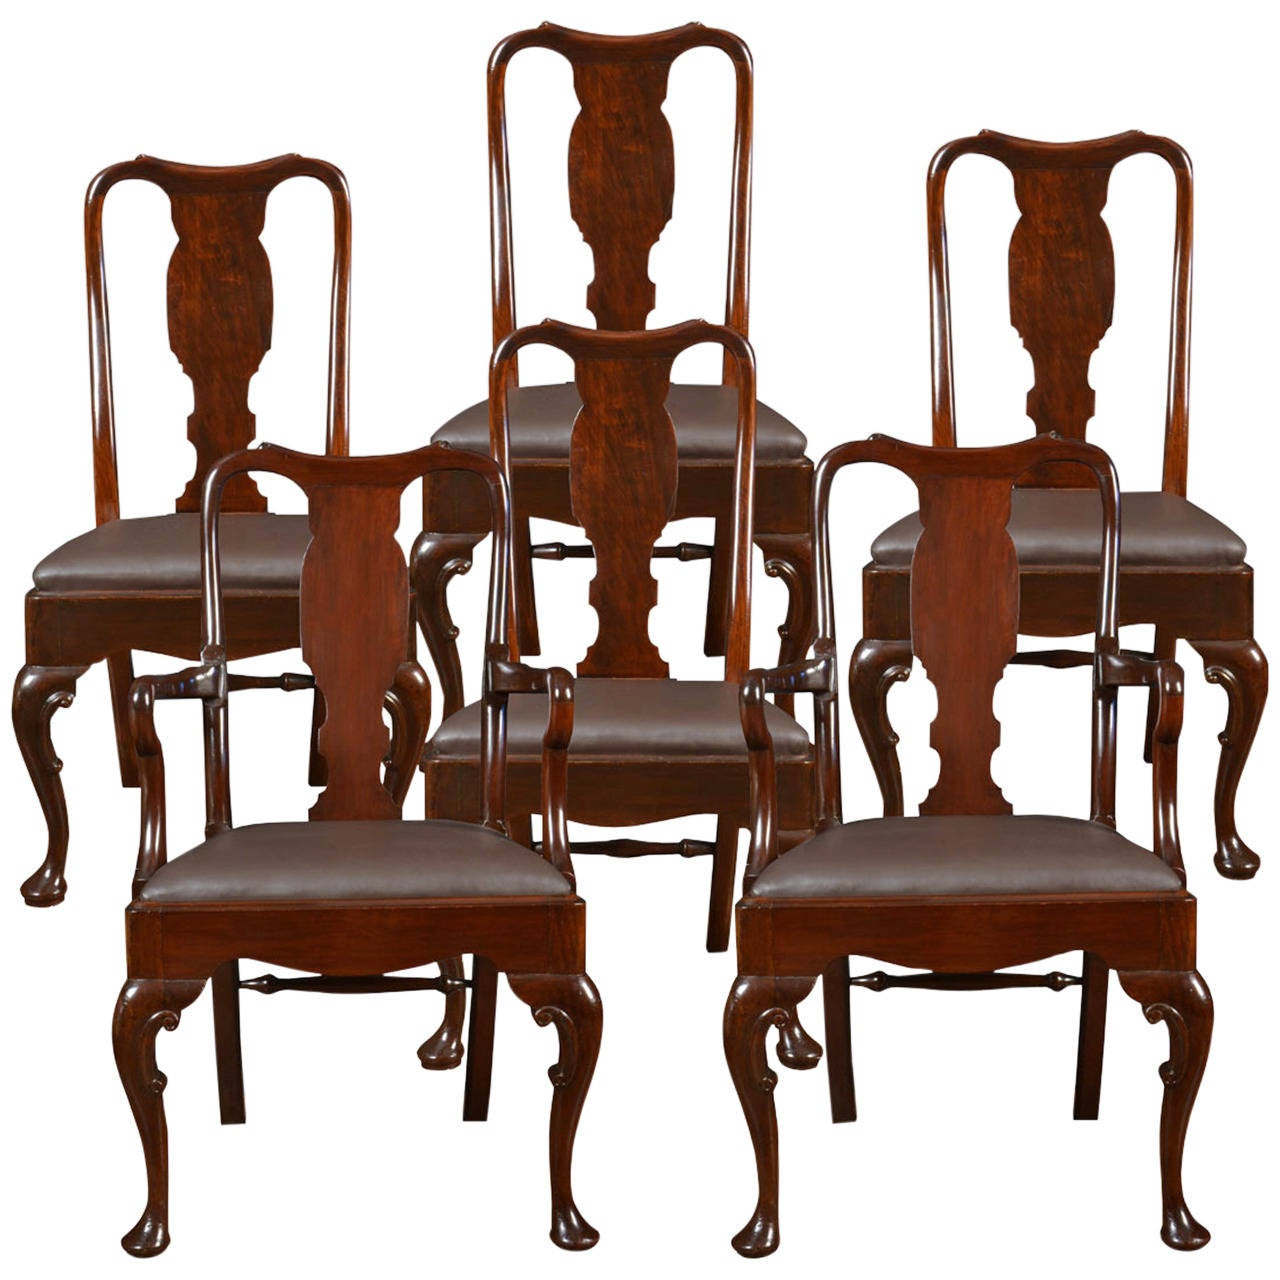 Set of six early 20th century queen anne style high back dining chairs at 1stdibs - Queen anne dining room furniture ...